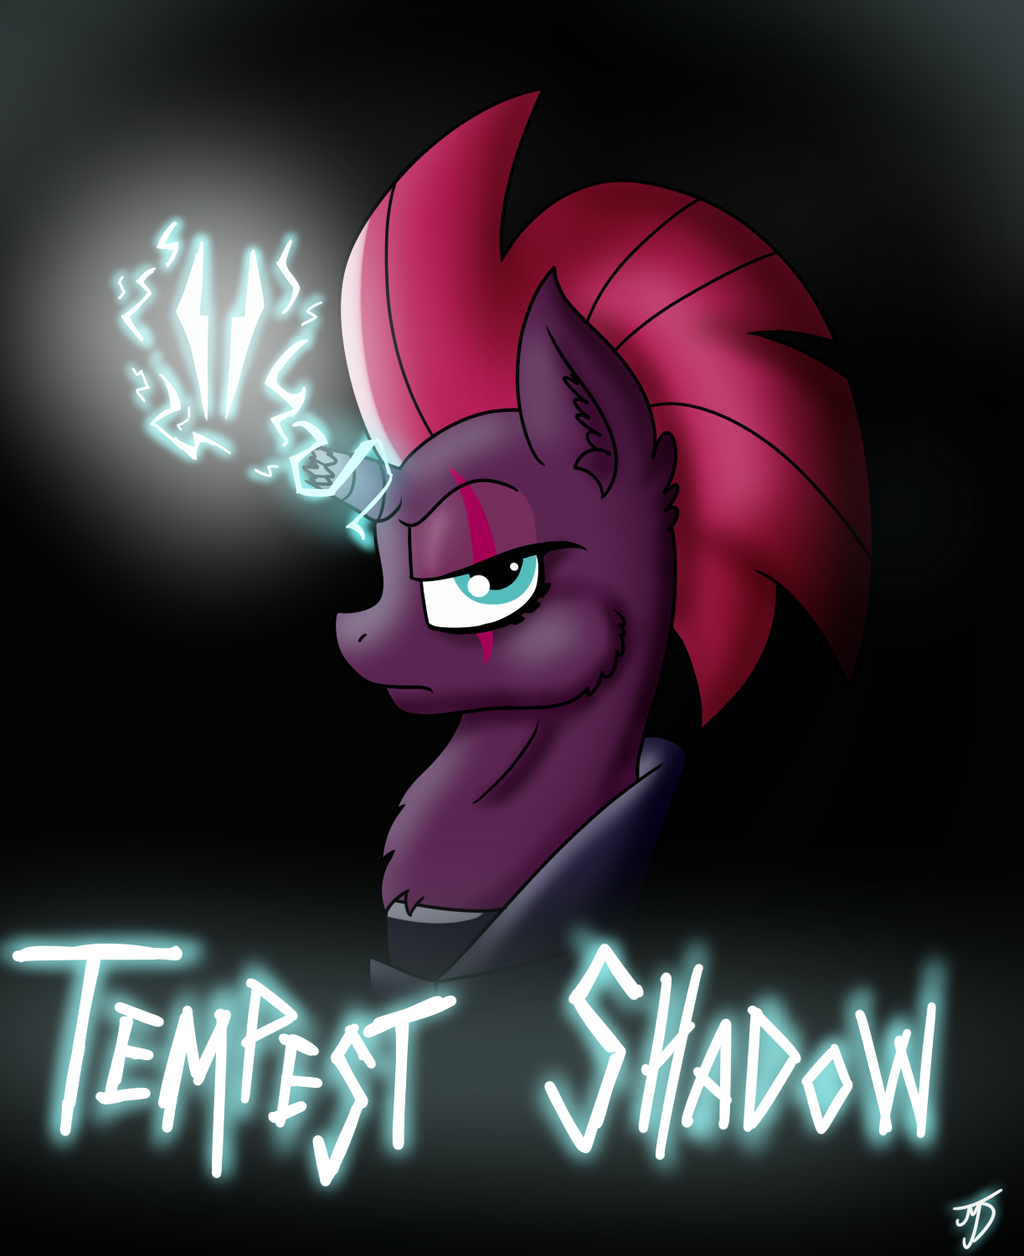 tempest_shadow_by_takutanuvataio-dbefqe1.png